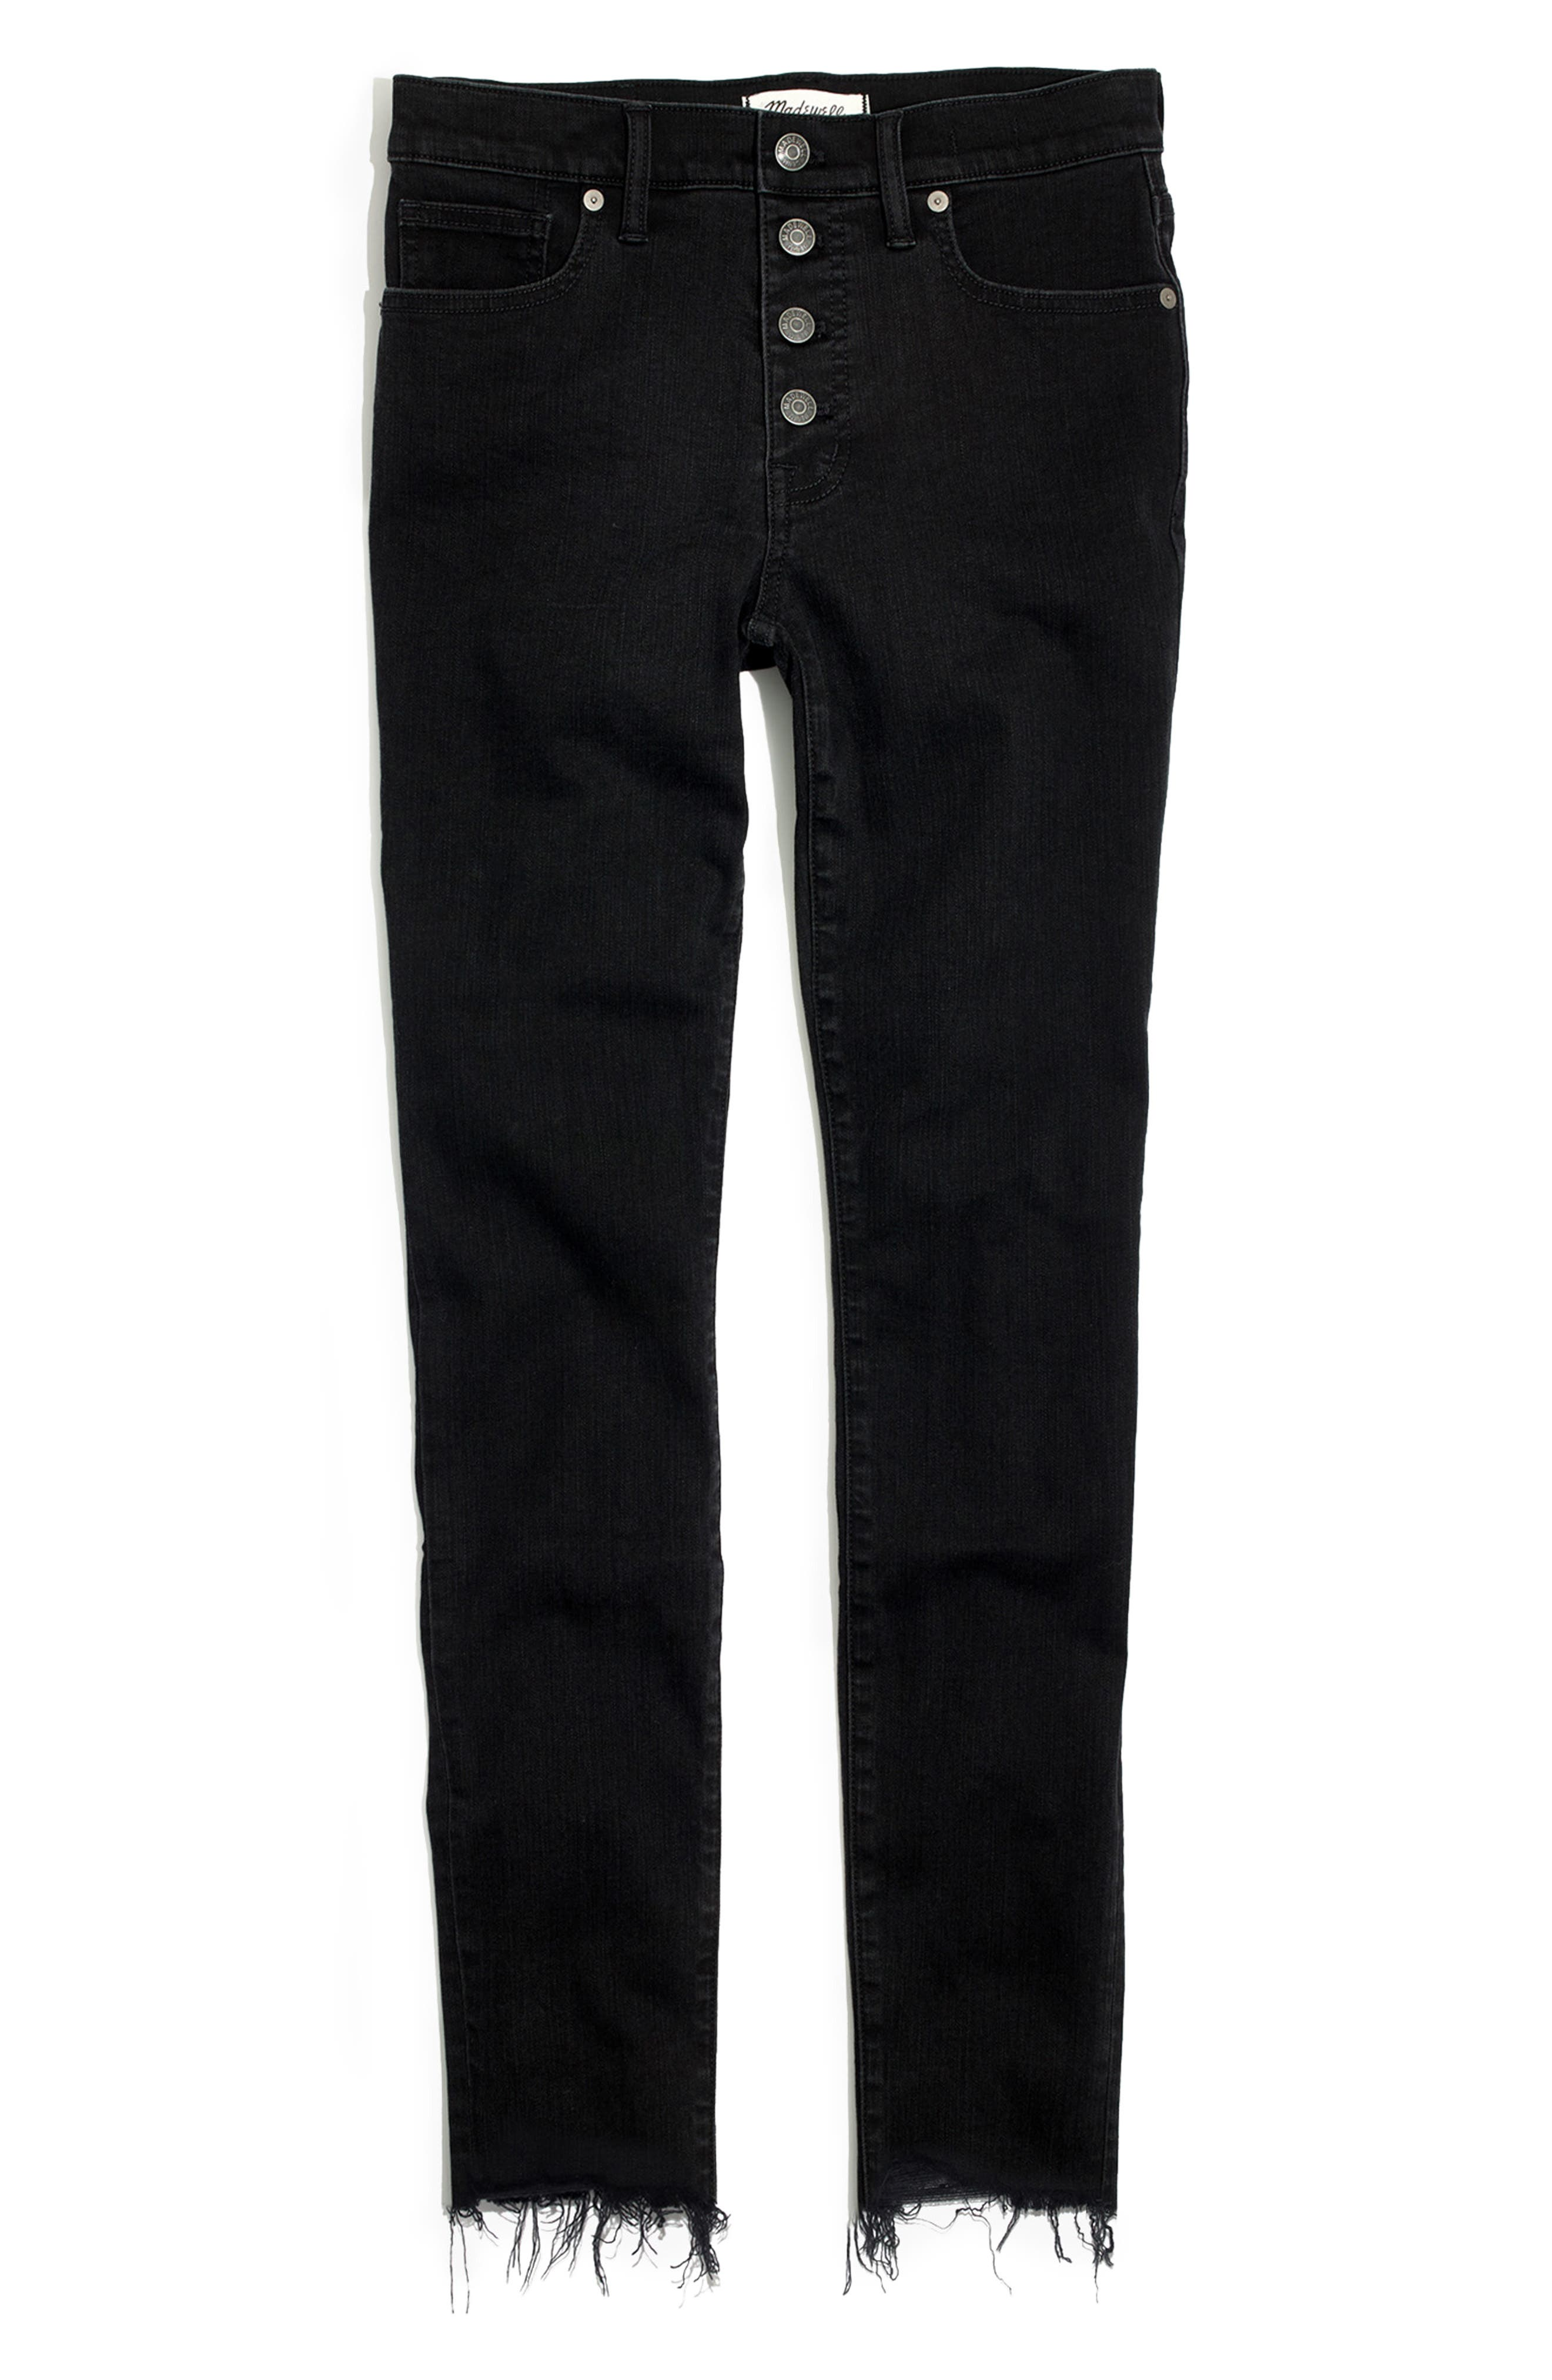 9-Inch Button High Waist Ankle Skinny Jeans,                             Alternate thumbnail 7, color,                             BERKELEY WASH